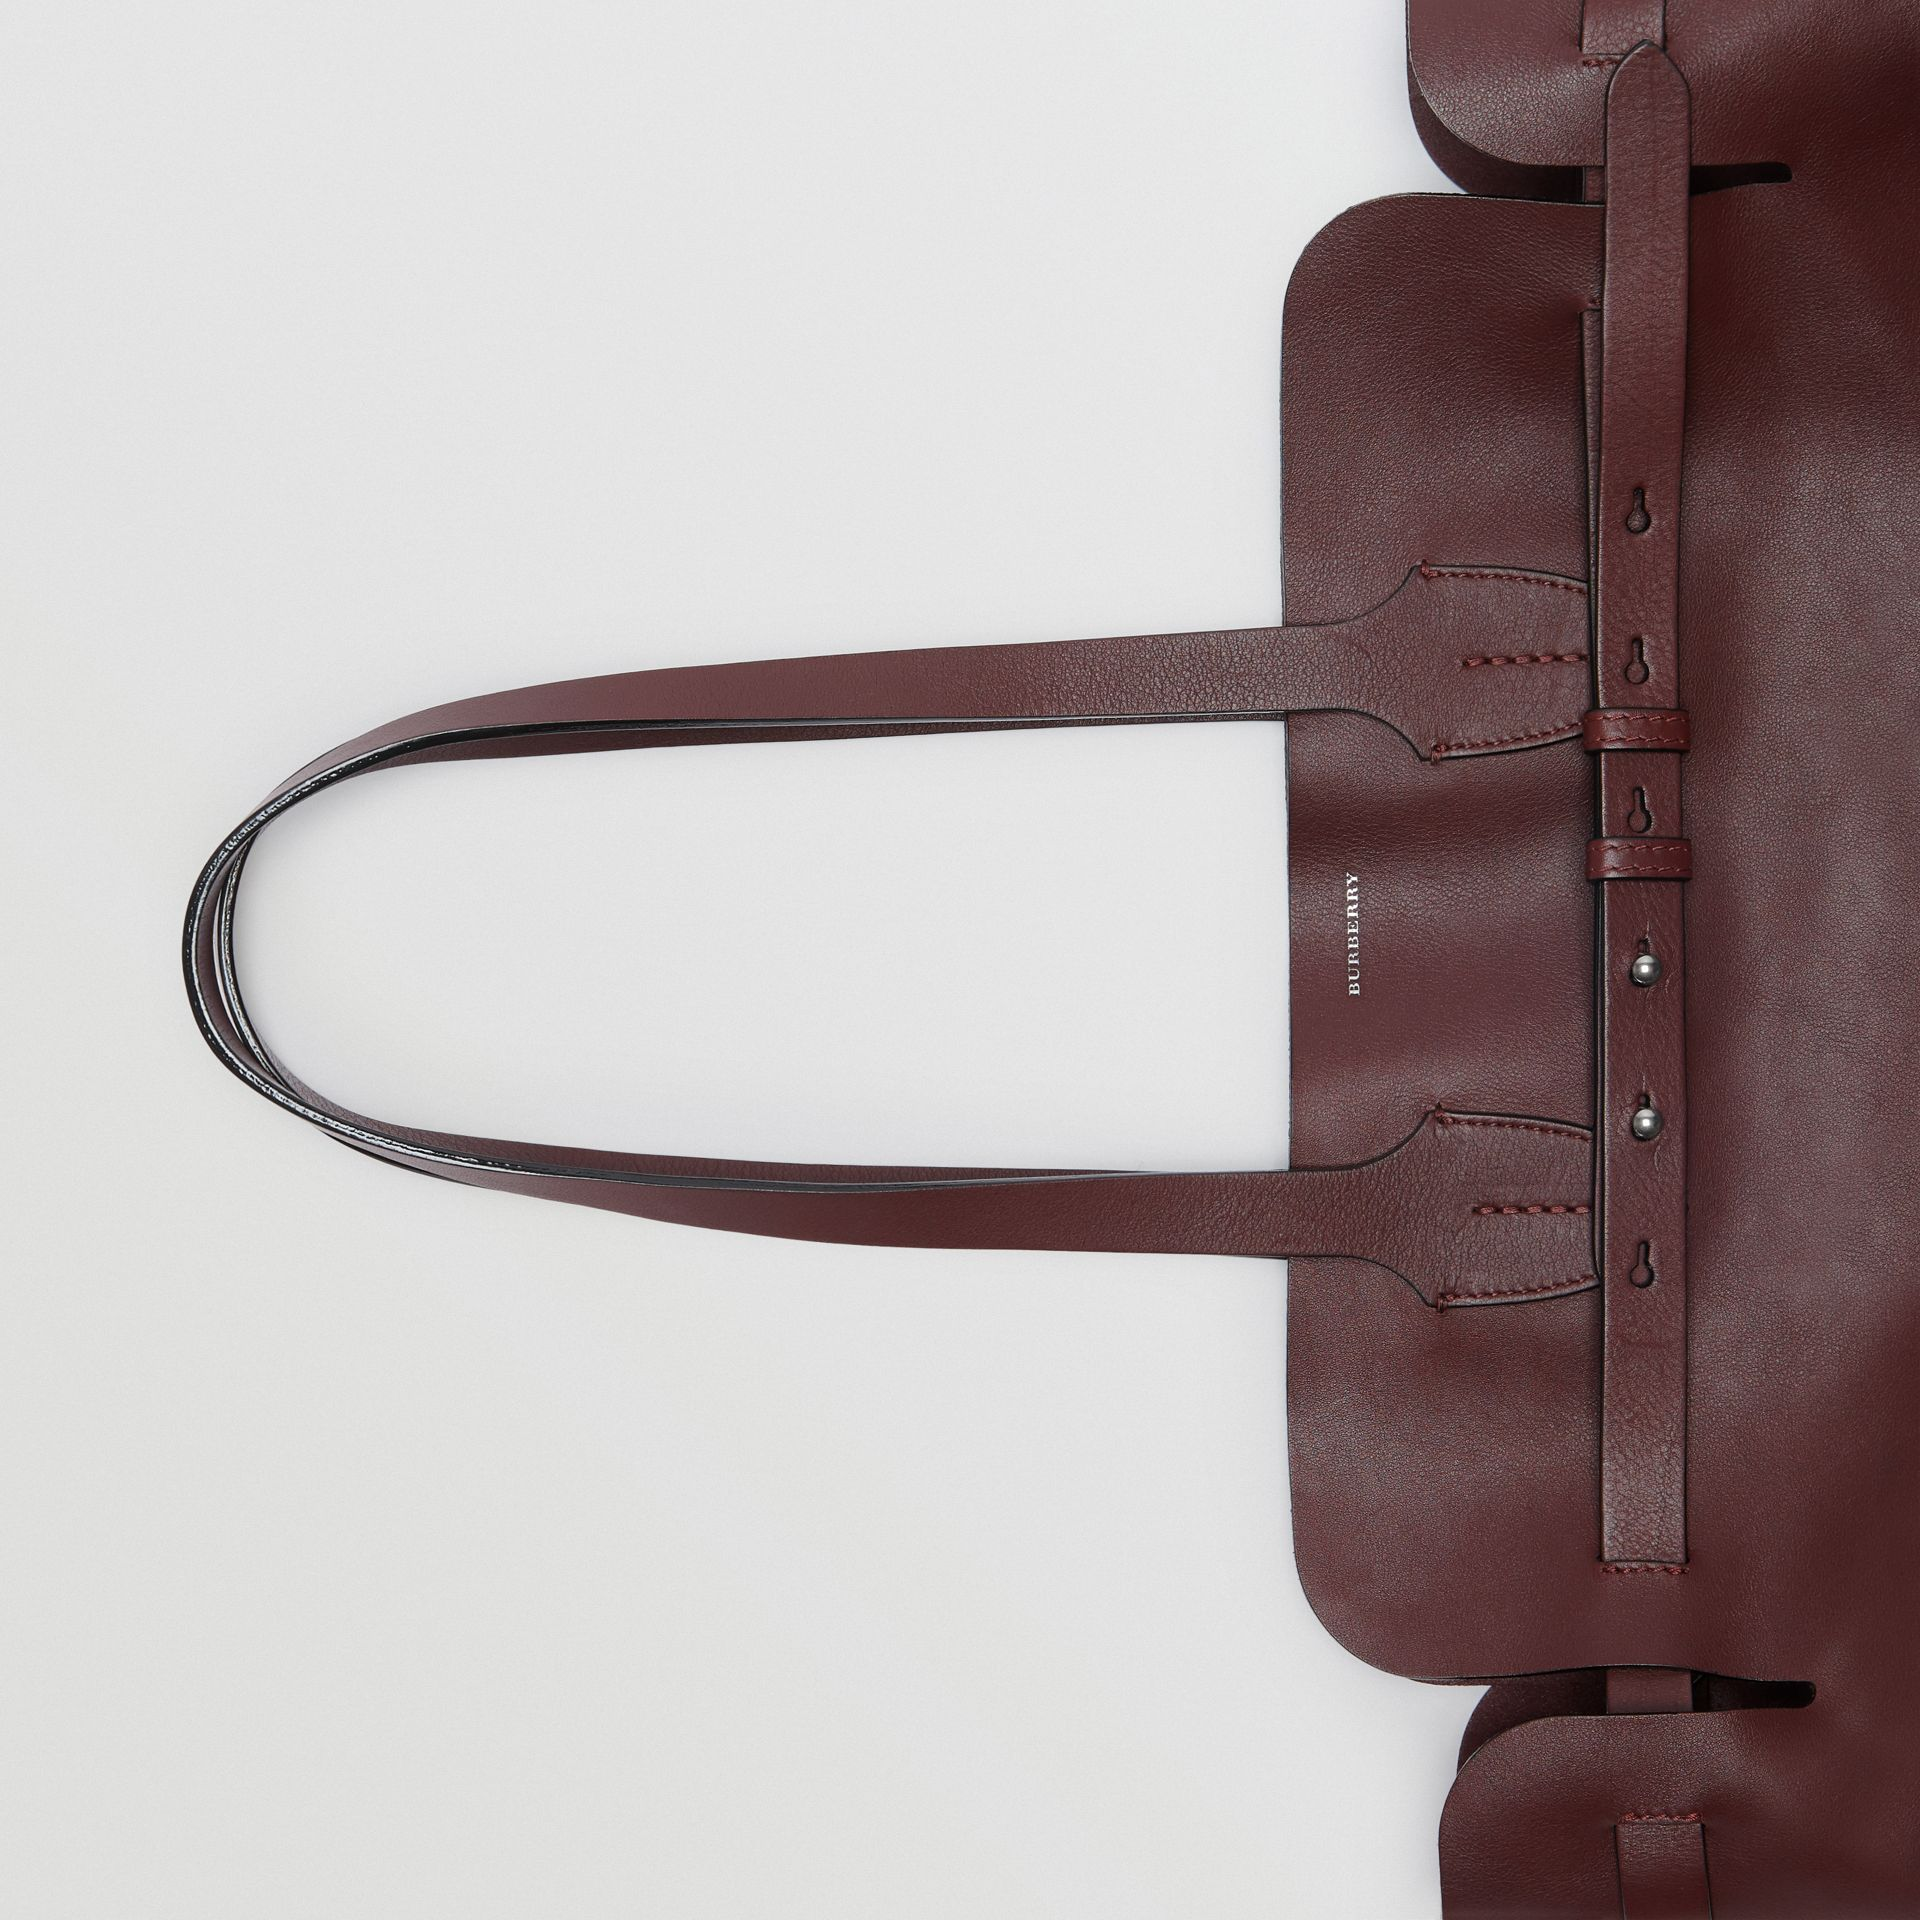 Sac The Belt moyen en cuir doux (Bordeaux Intense) - Femme | Burberry Canada - photo de la galerie 1